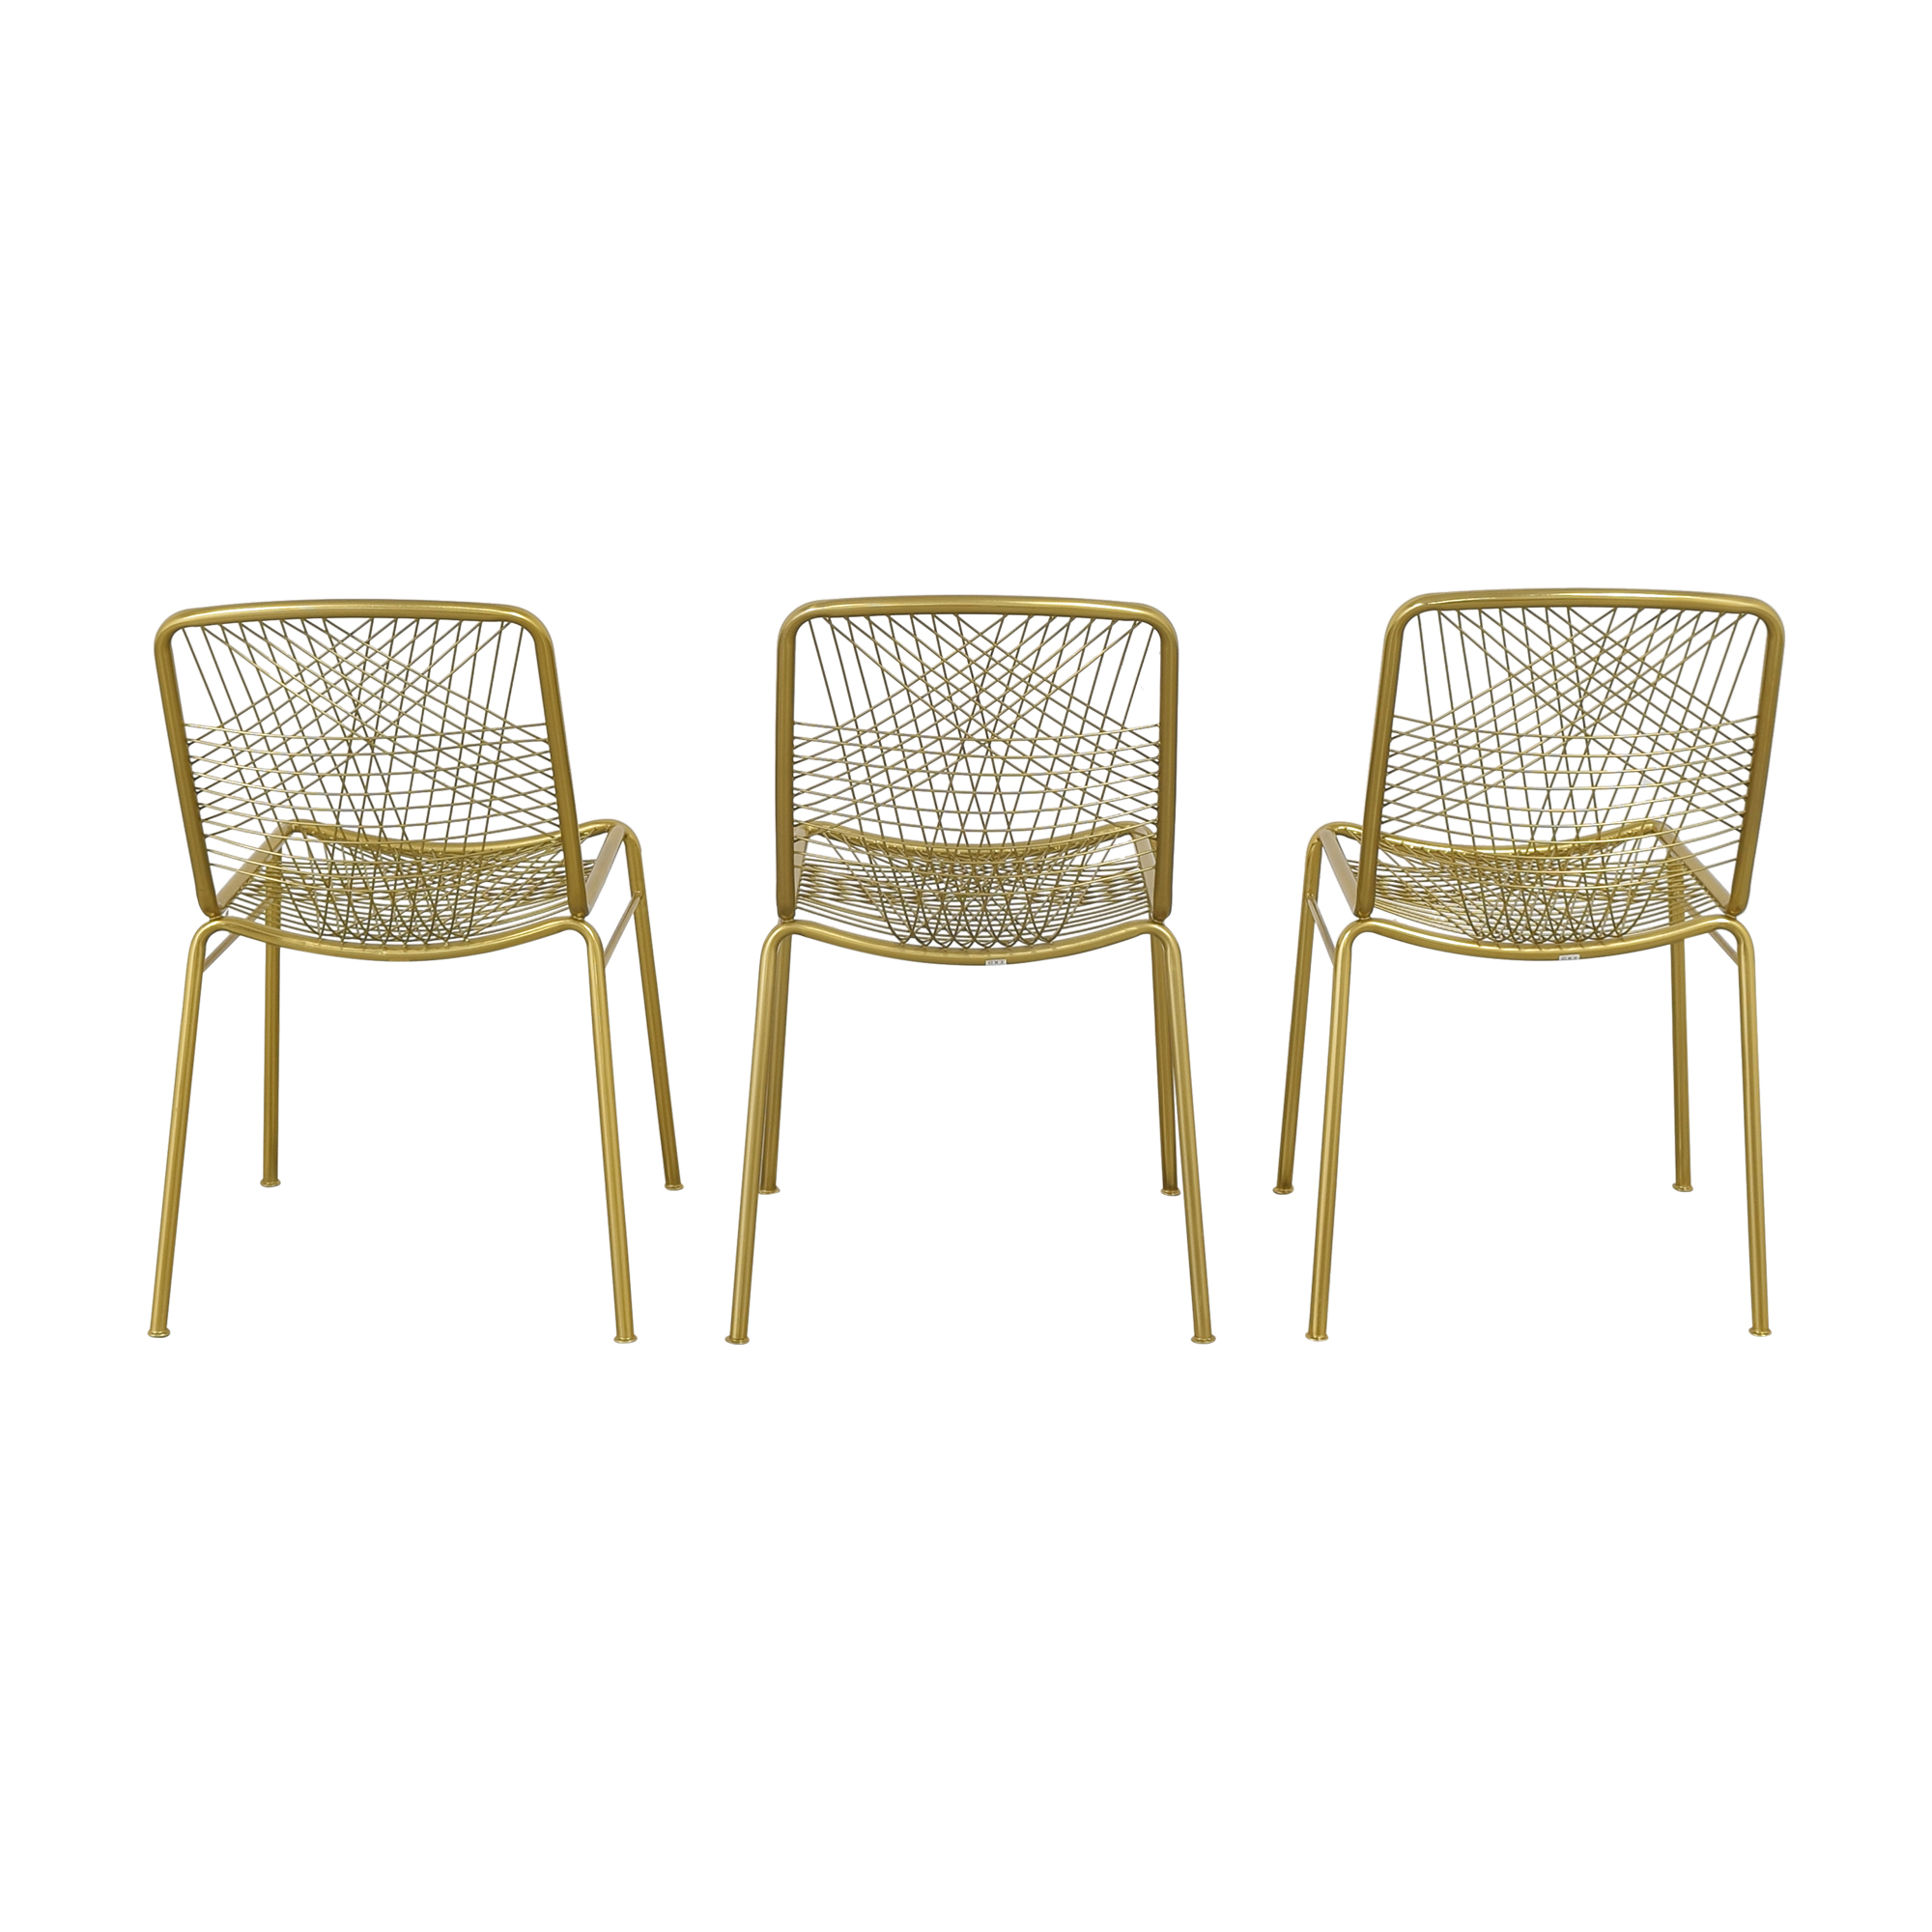 CB2 Alpha Chairs / Dining Chairs